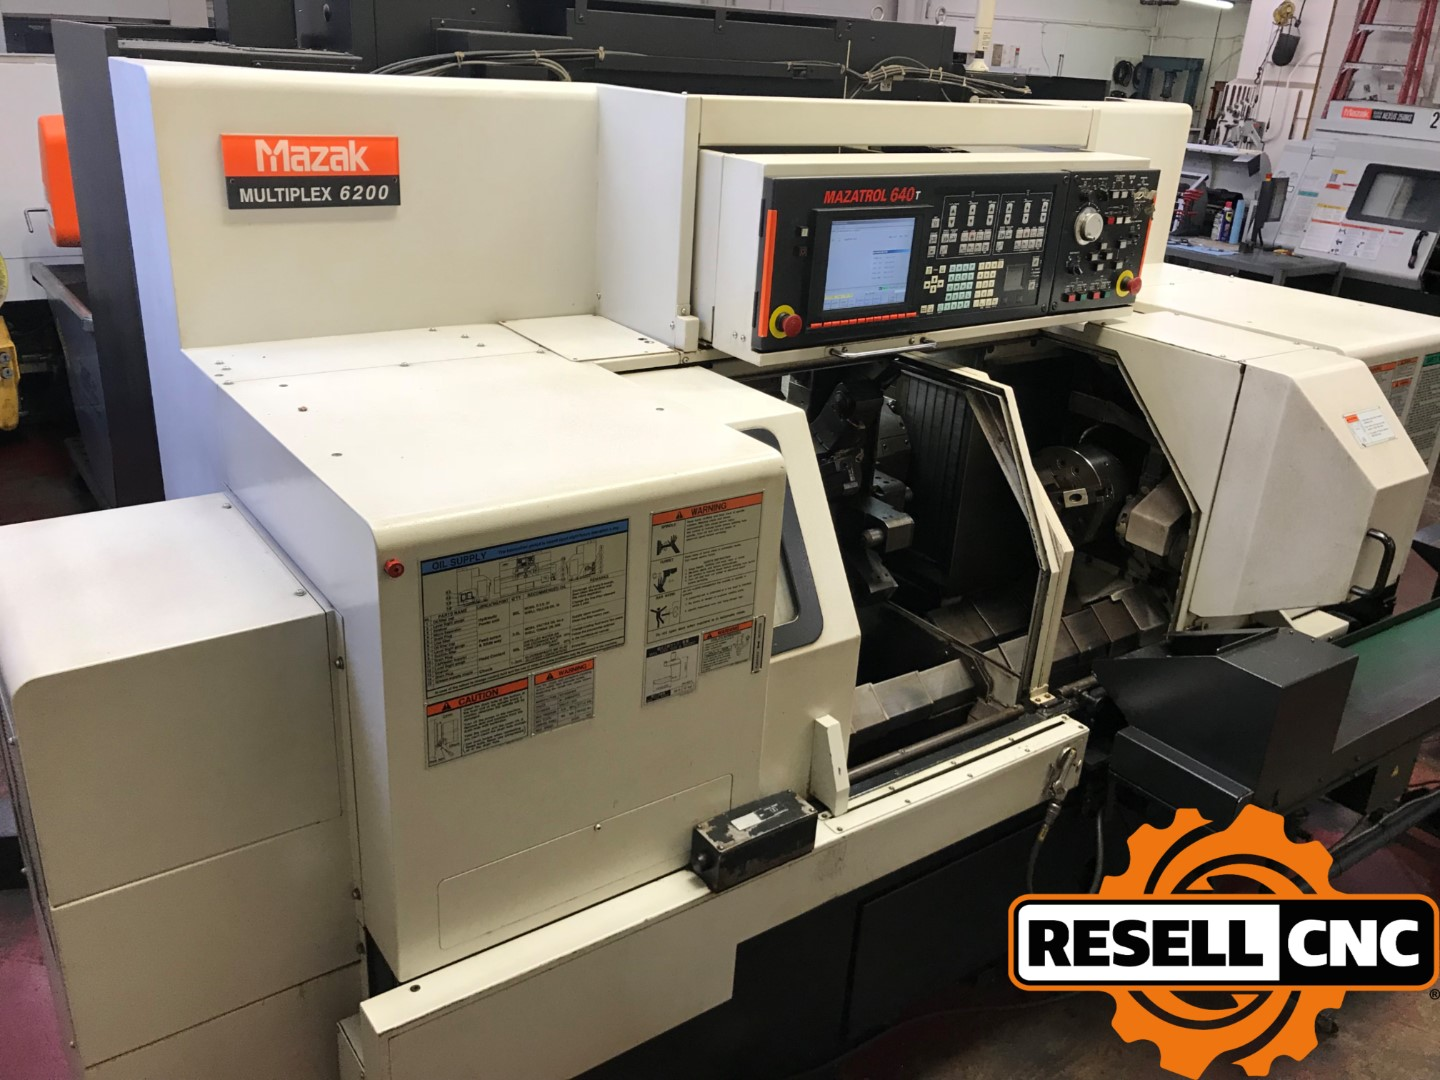 Mazak MP-6200 CNC Lathes | Used CNC - Resell CNC